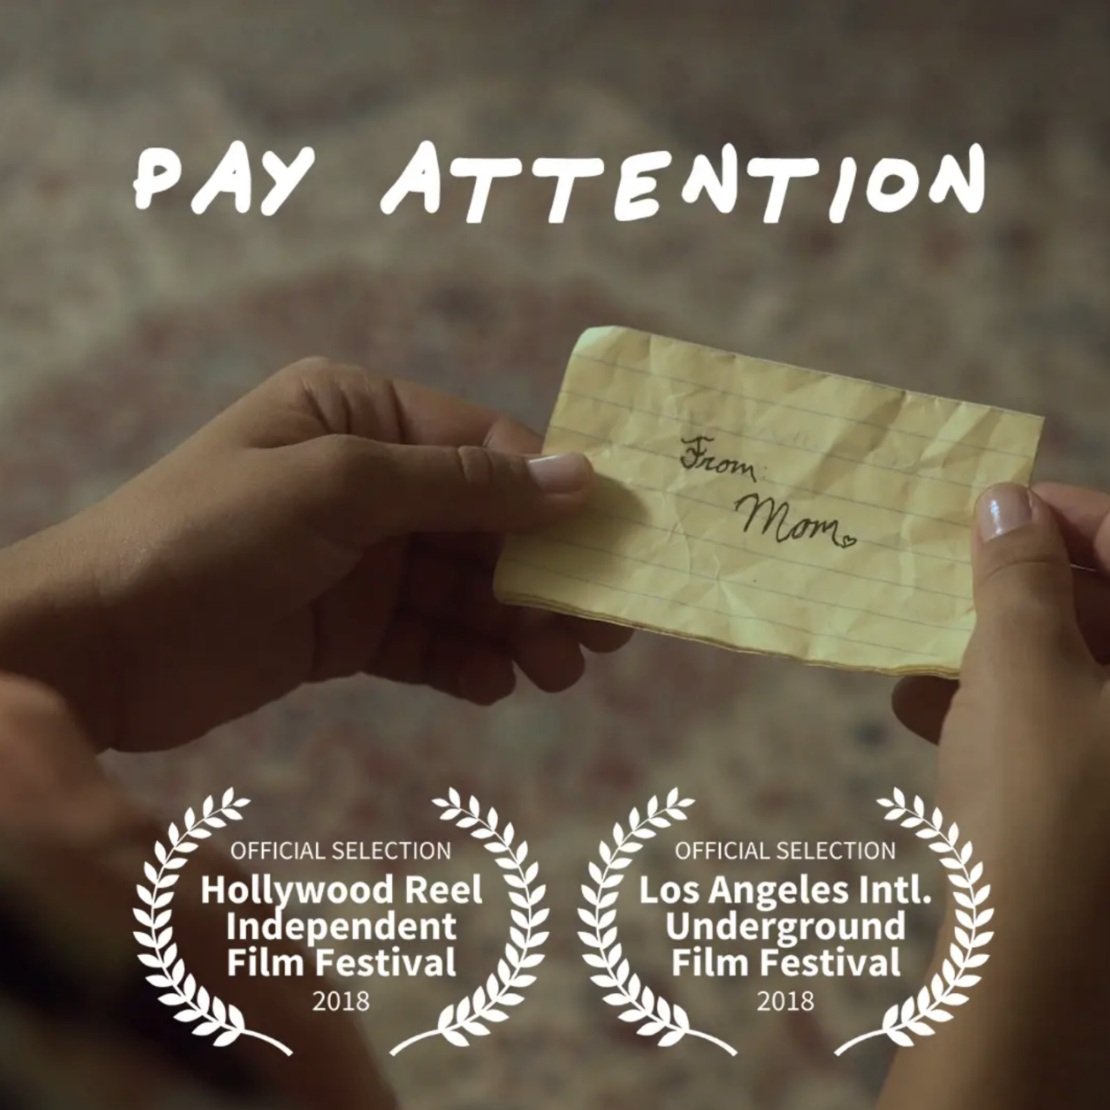 Pay Attention (2018) - Three siblings come home and find an alarming note from their parents.Watch on Vimeo ➝